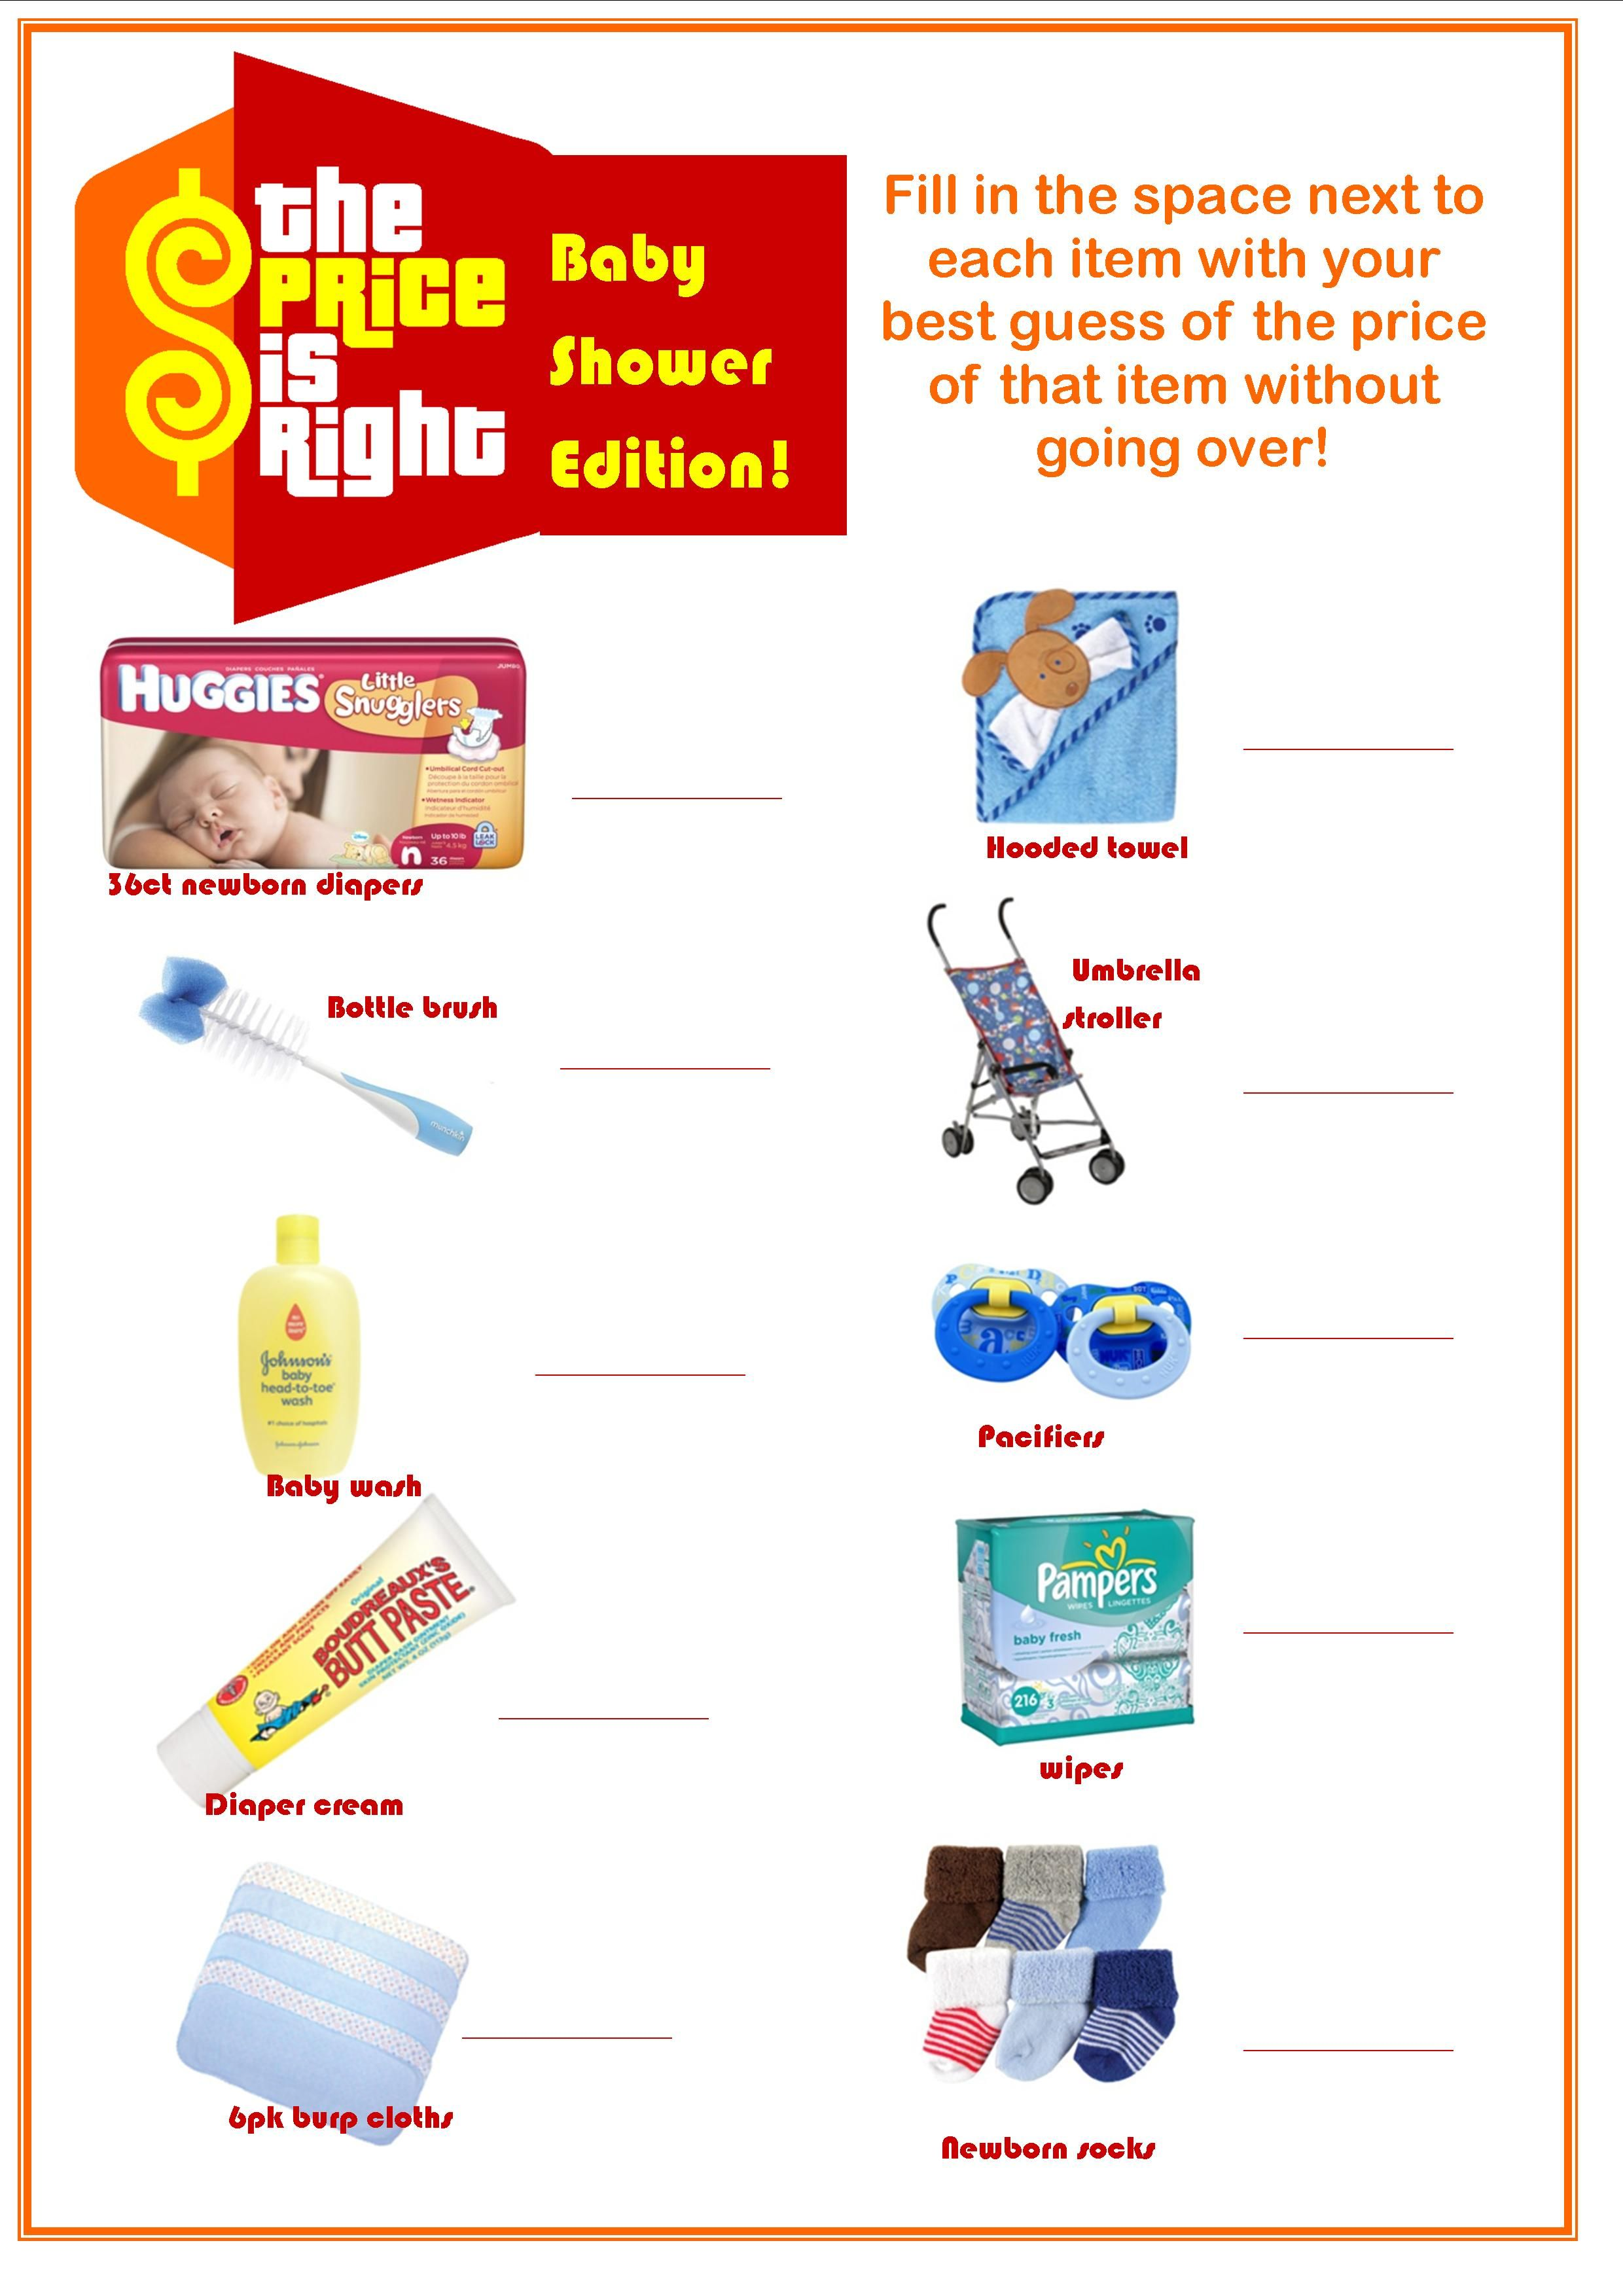 Baby Shower Price Is Right Answer Key : shower, price, right, answer, Nicole, Hartley, Shower, Funny,, Games,, Funny, Games